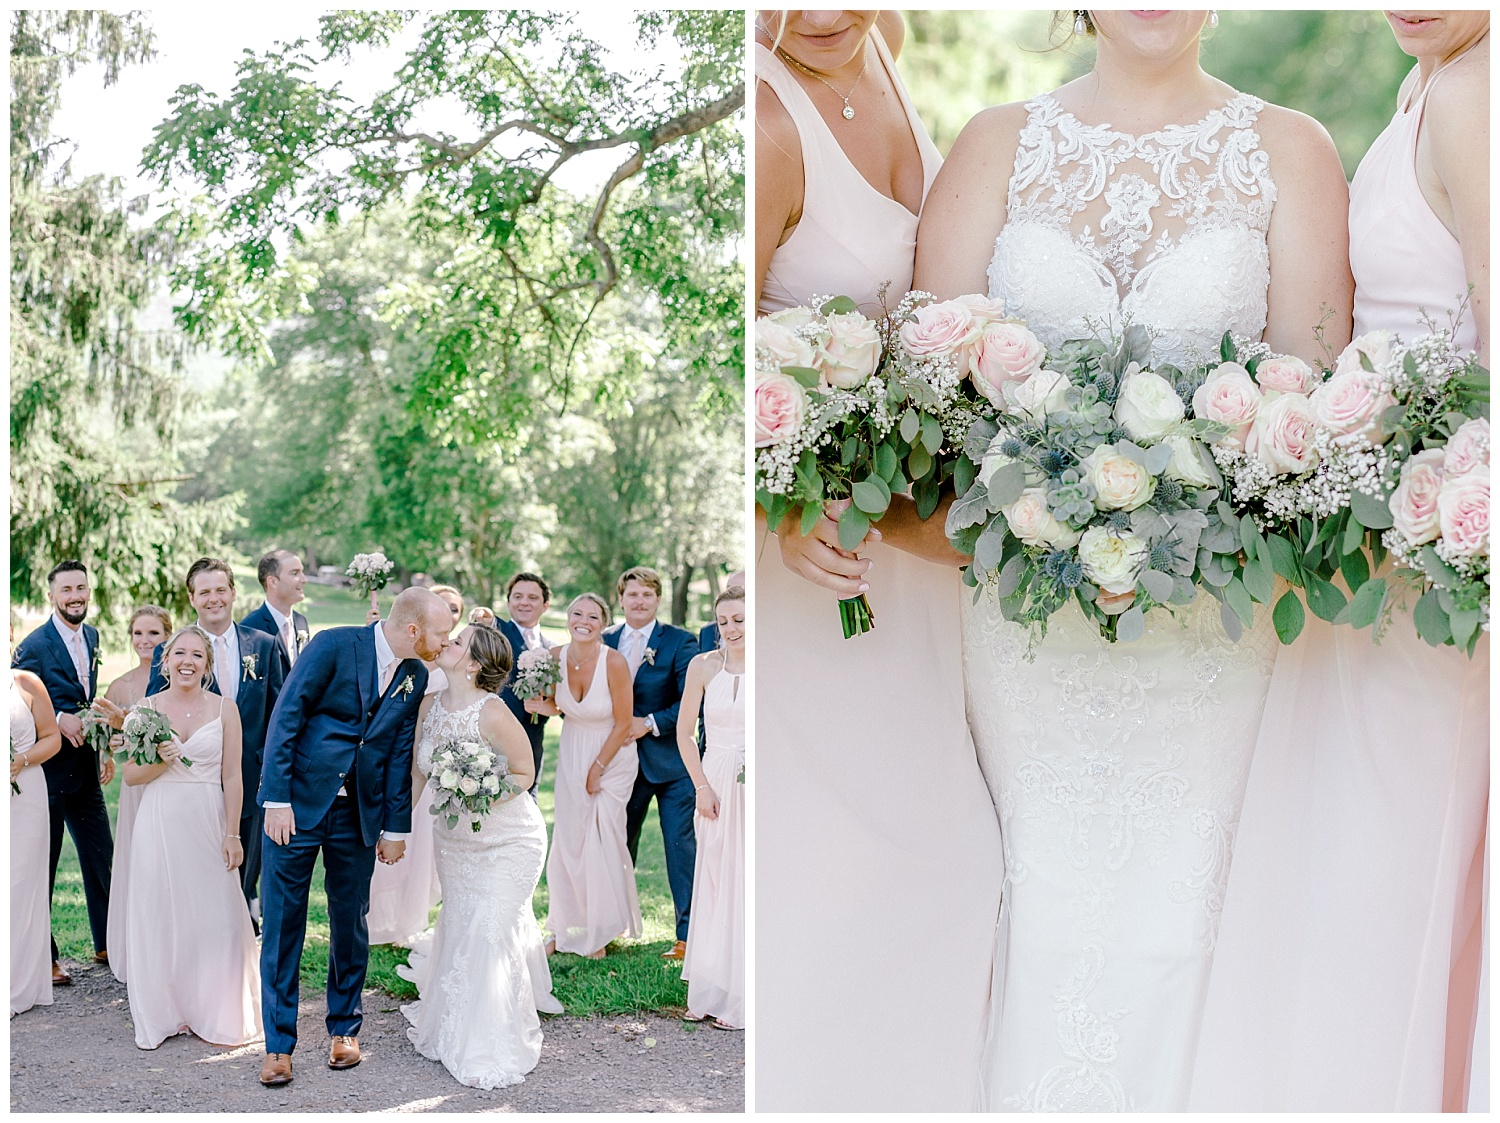 Navy and Blush pink inspired summertime whitewoods wedding in Northeastern Pennsylvania NEPA wapwallopen wedding venue by  PA based wedding and lifestyle photographer Lytle photography_0069.jpg